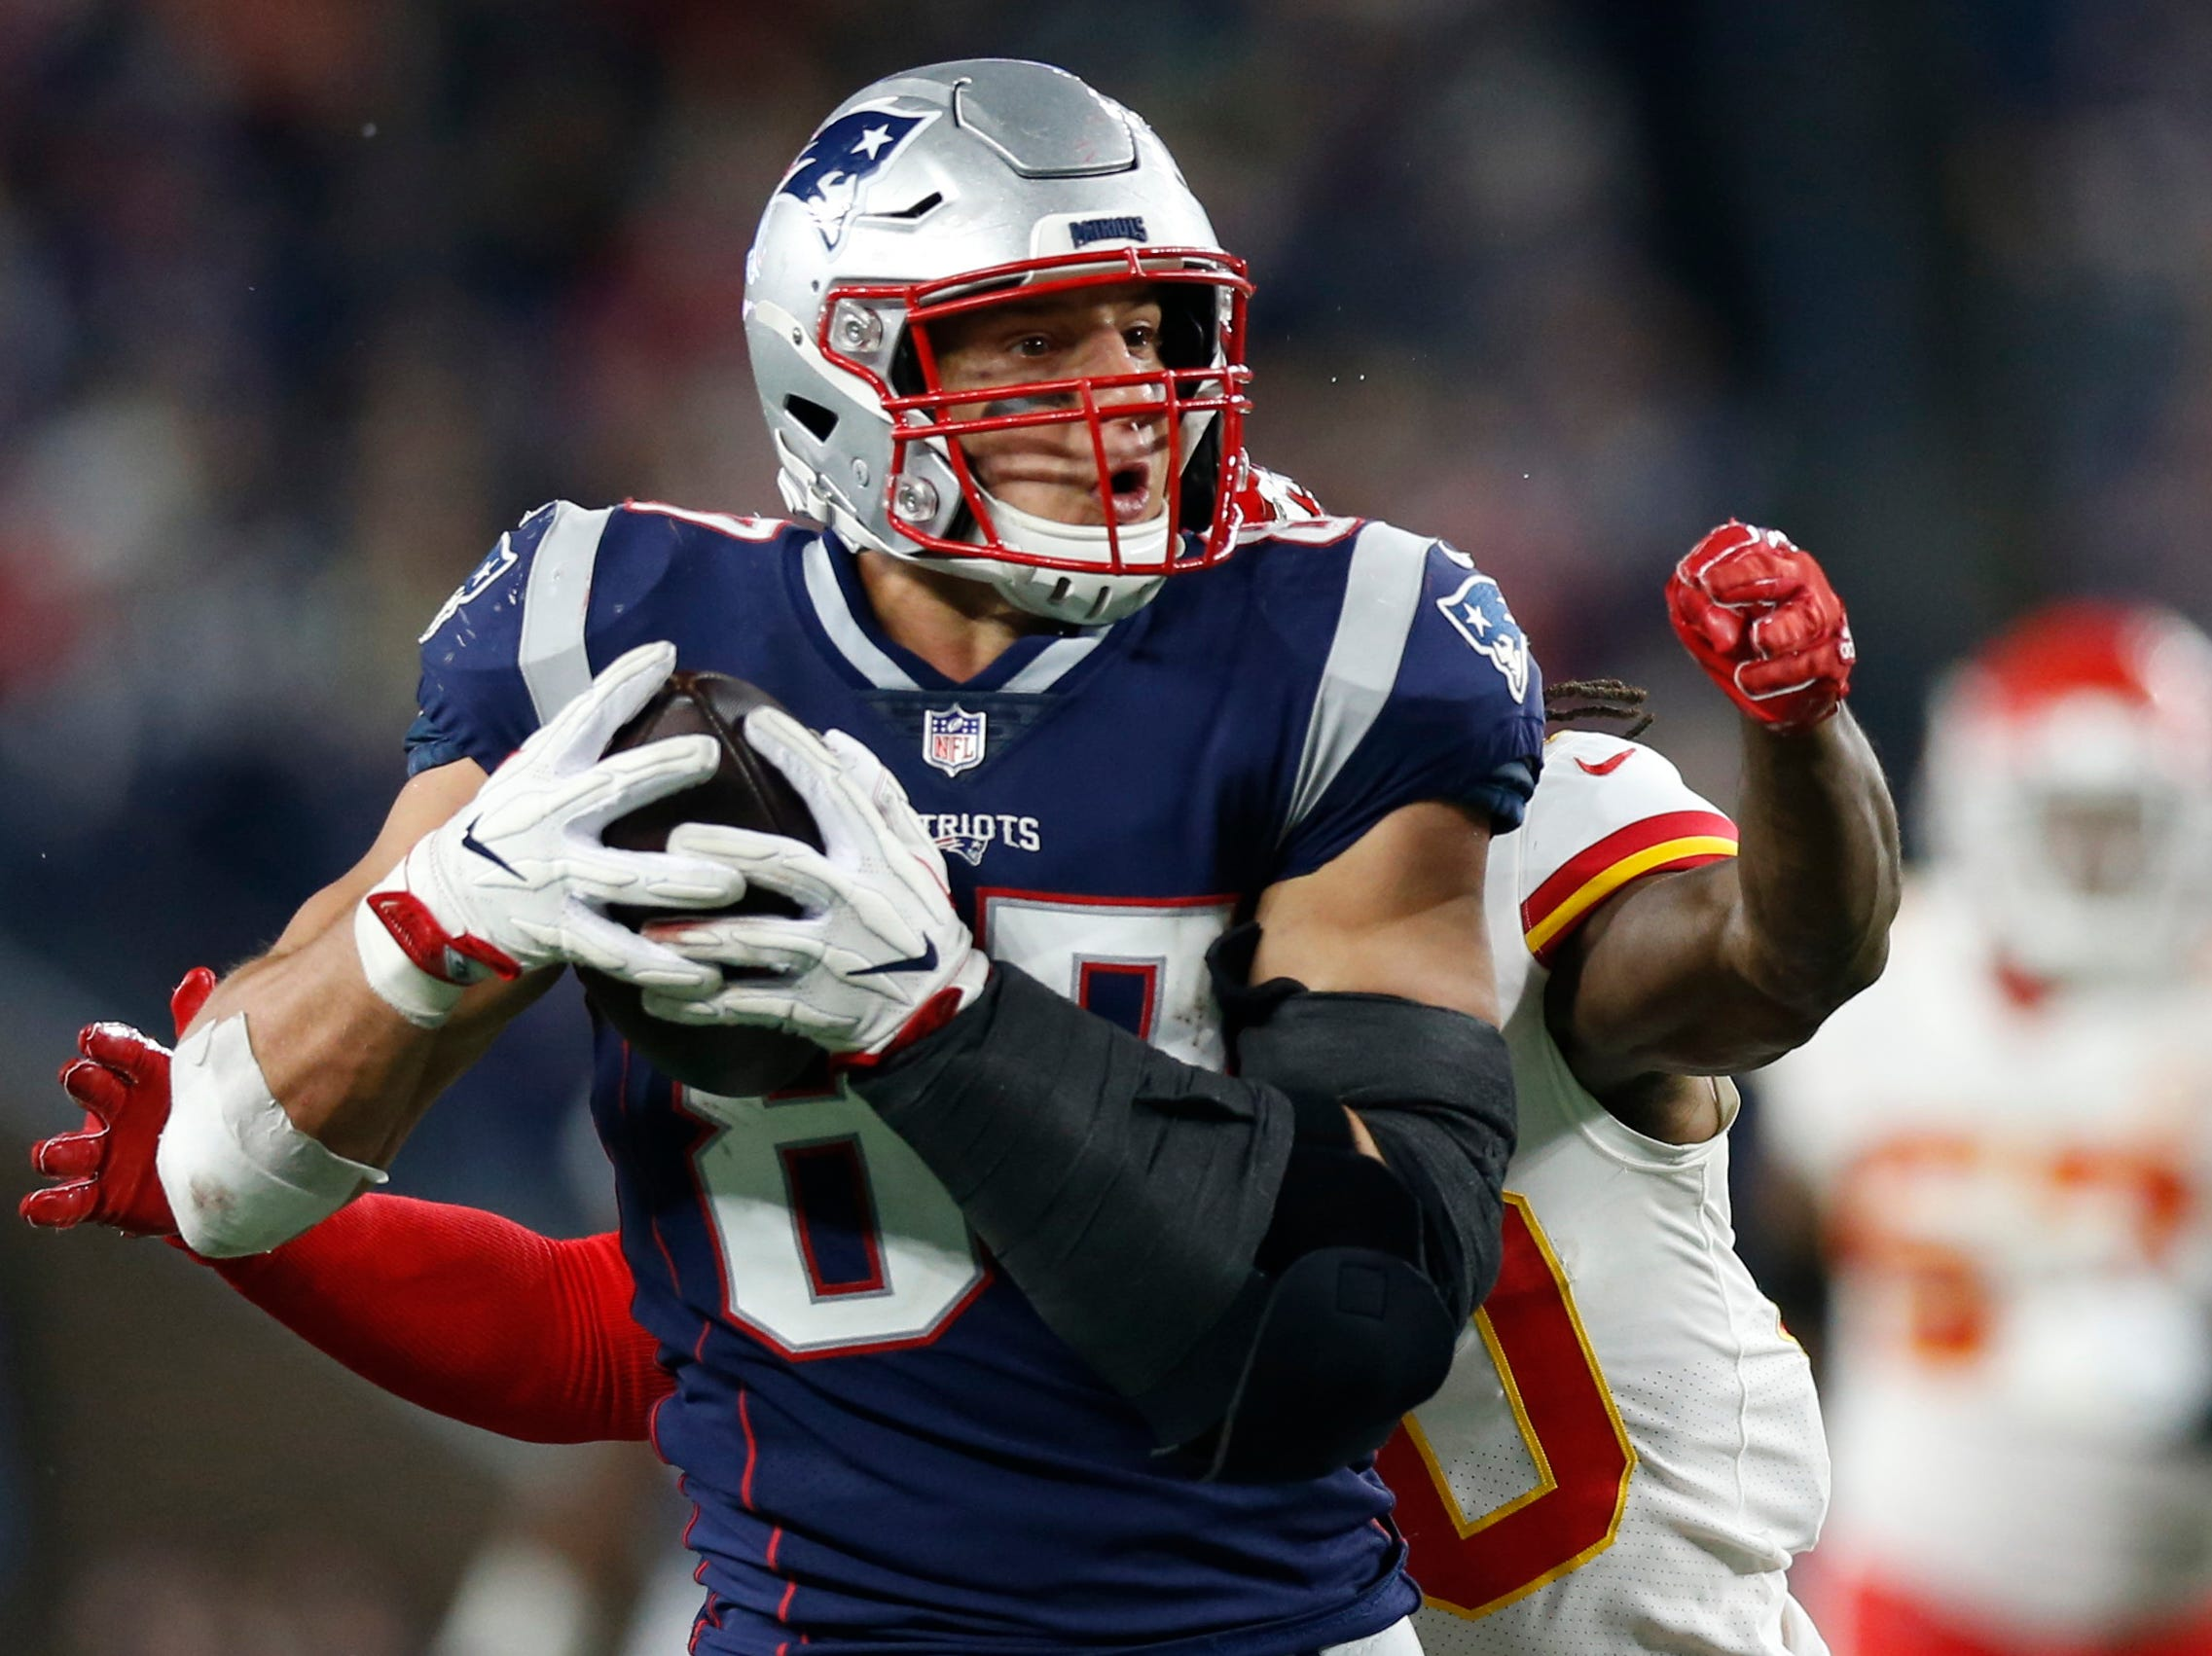 Oct. 14: New England Patriots tight end Rob Gronkowski (87) runs after a catch in the fourth quarter against the Kansas City Chiefs.